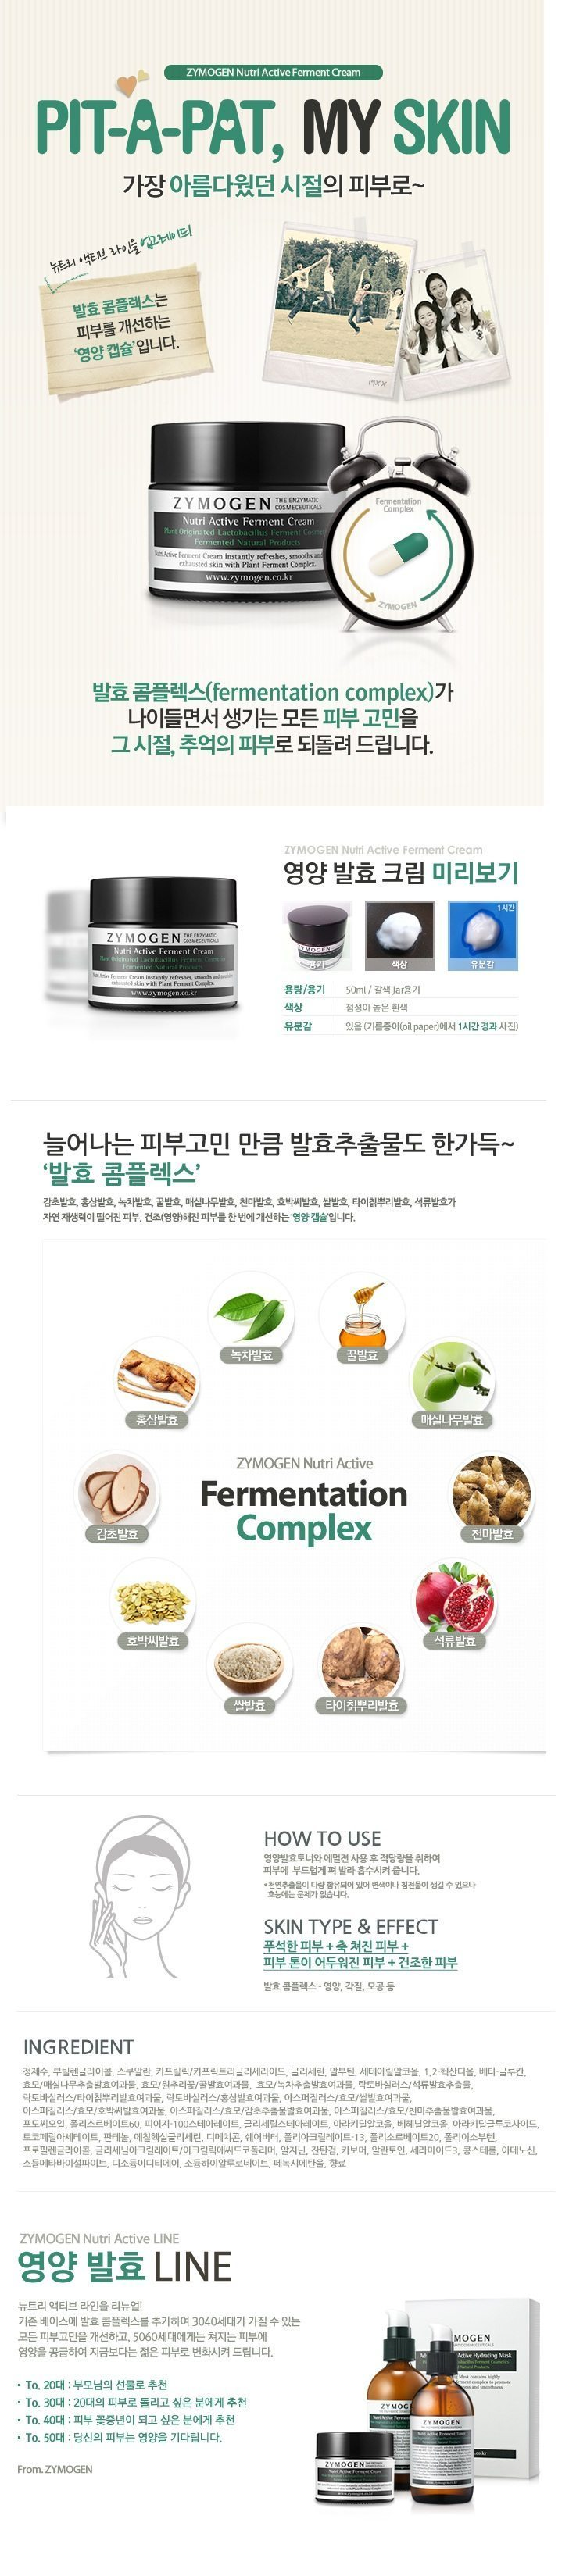 Zymogen Nutri Active Ferment Cream korean cosmetic skincar product online shop malaysia brazil macau1